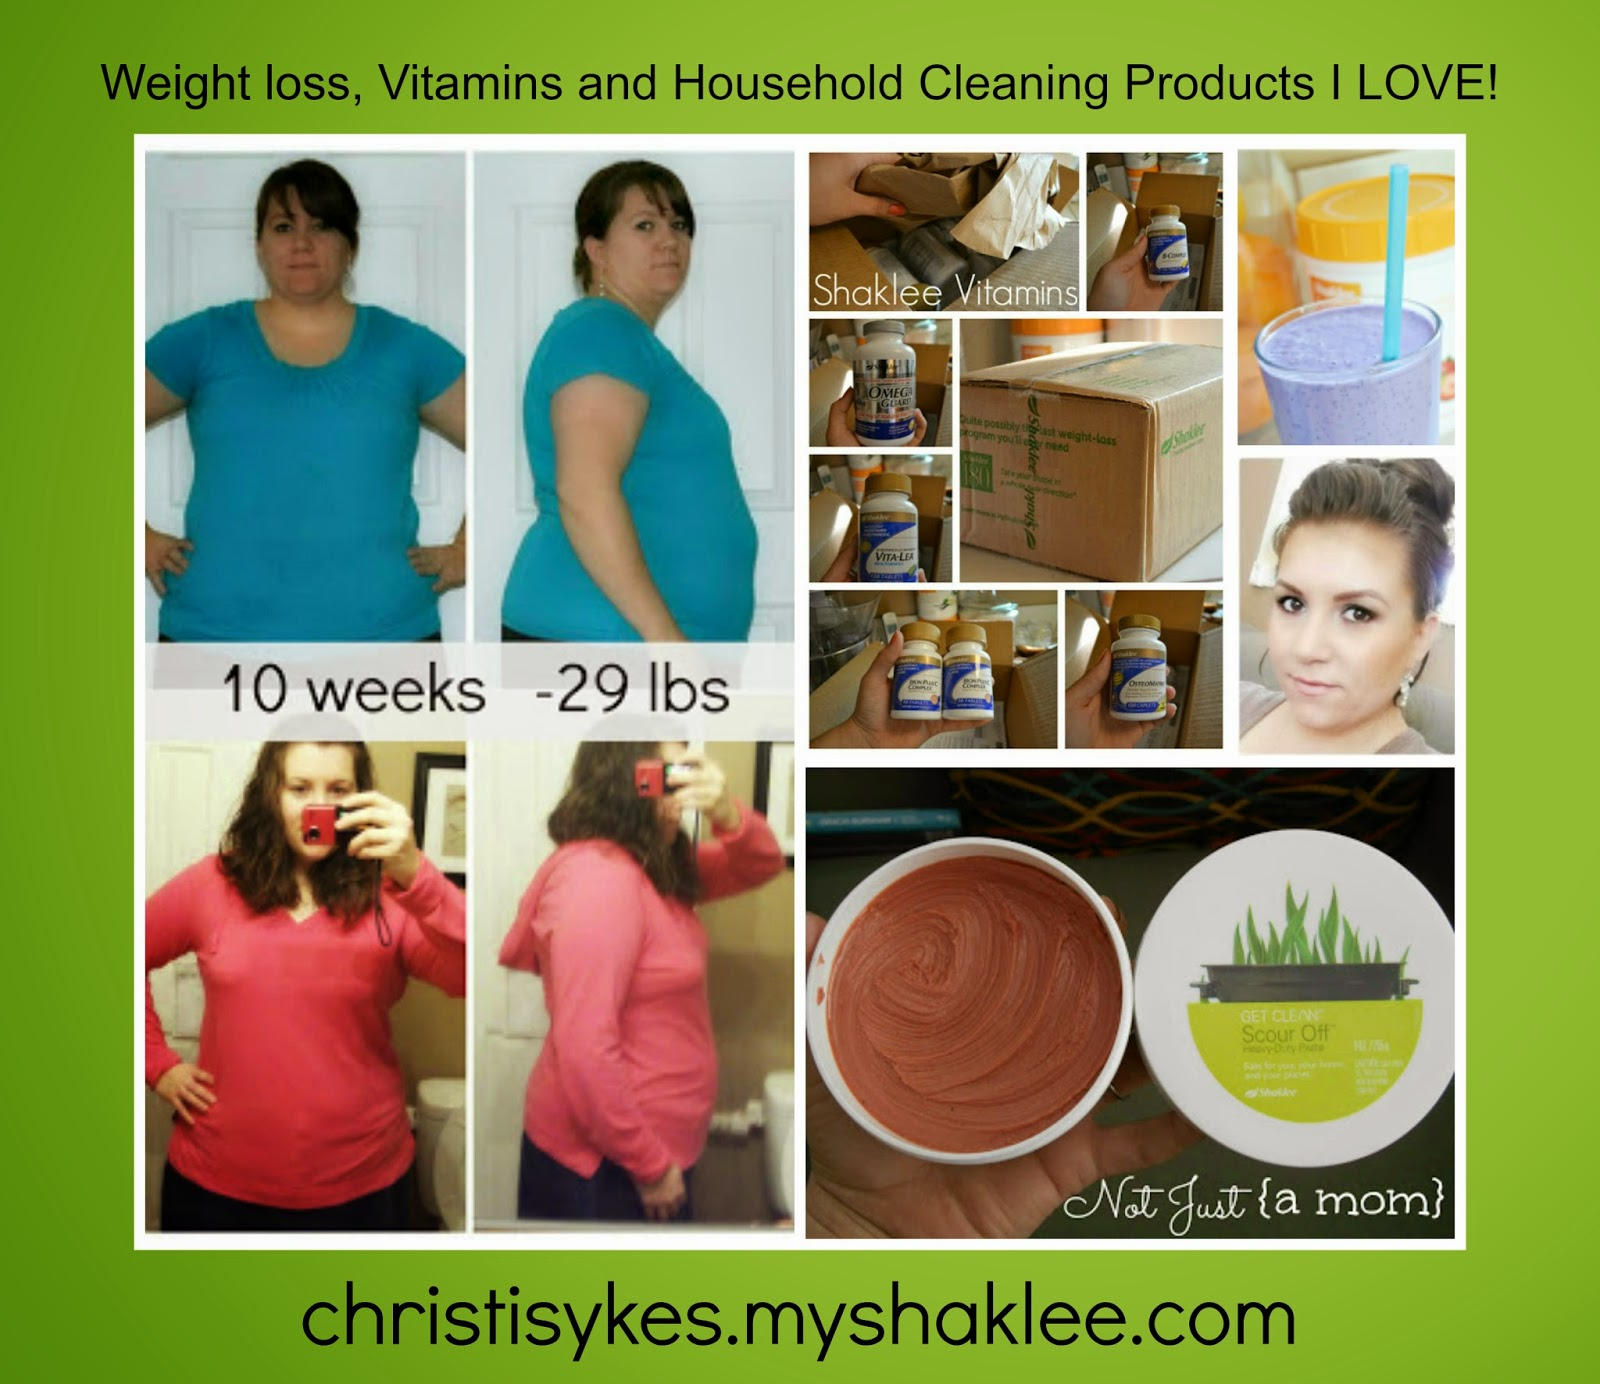 http://christisykes.myshaklee.com/us/en/category.php?main_cat=WeightManagement